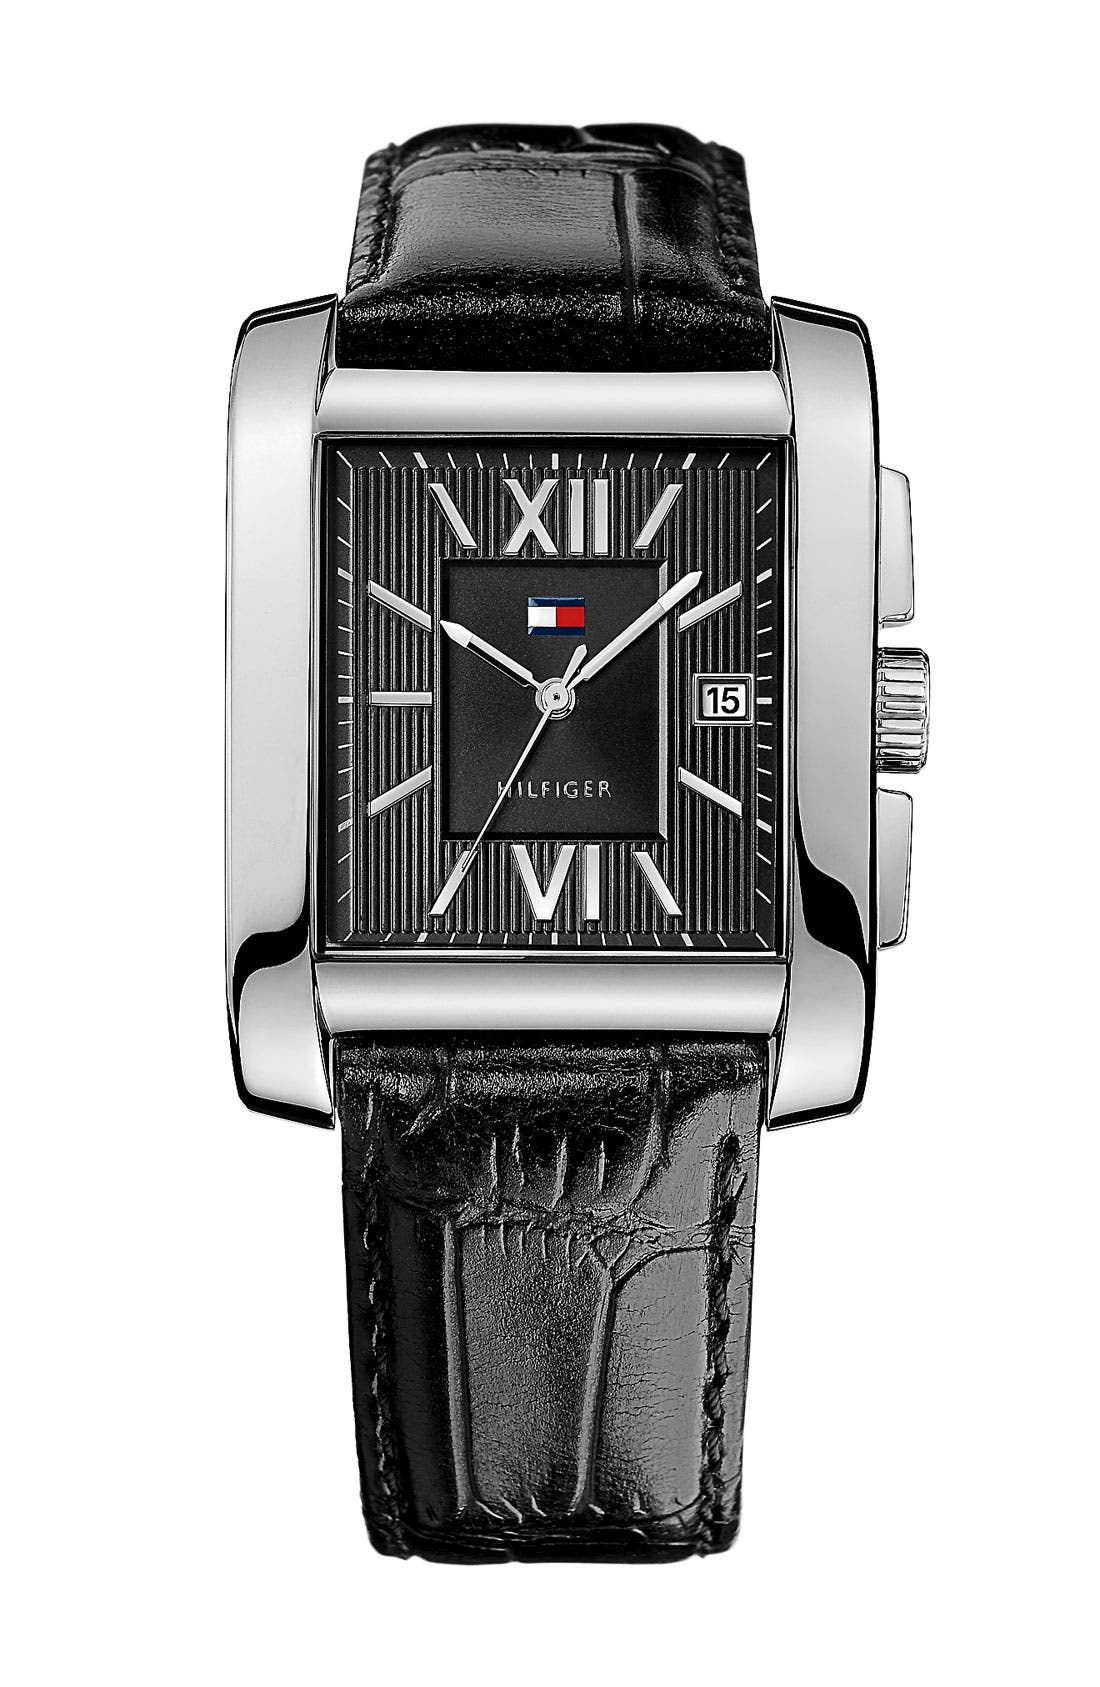 Main Image - Tommy Hilfiger Square Leather Strap Watch, 36mm x 47mm